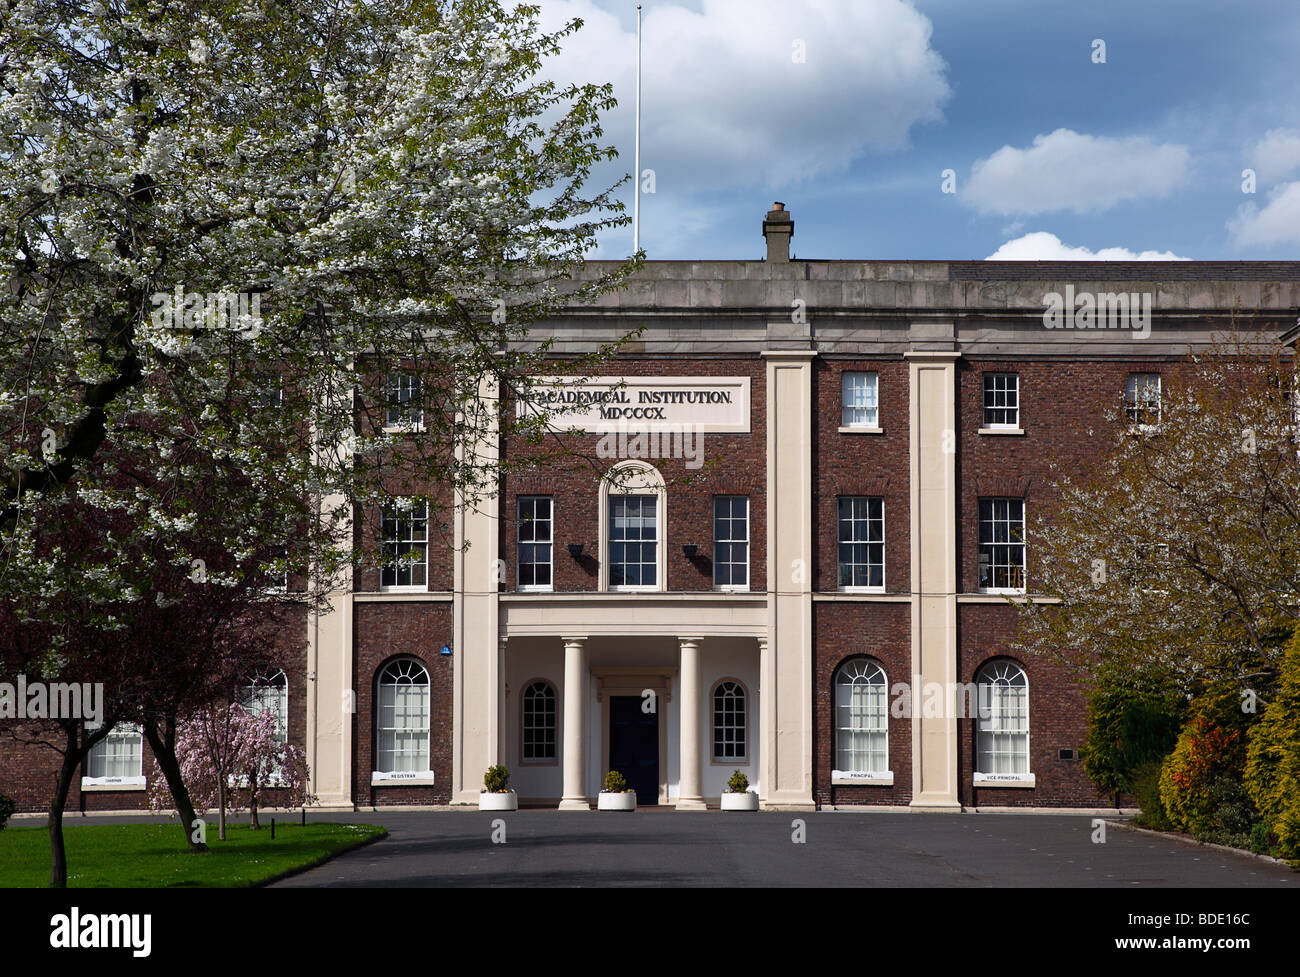 IRELAND, North, Belfast, College Square East, Entrance to Belfast Academical Institute Collece, known as INST. - Stock Image